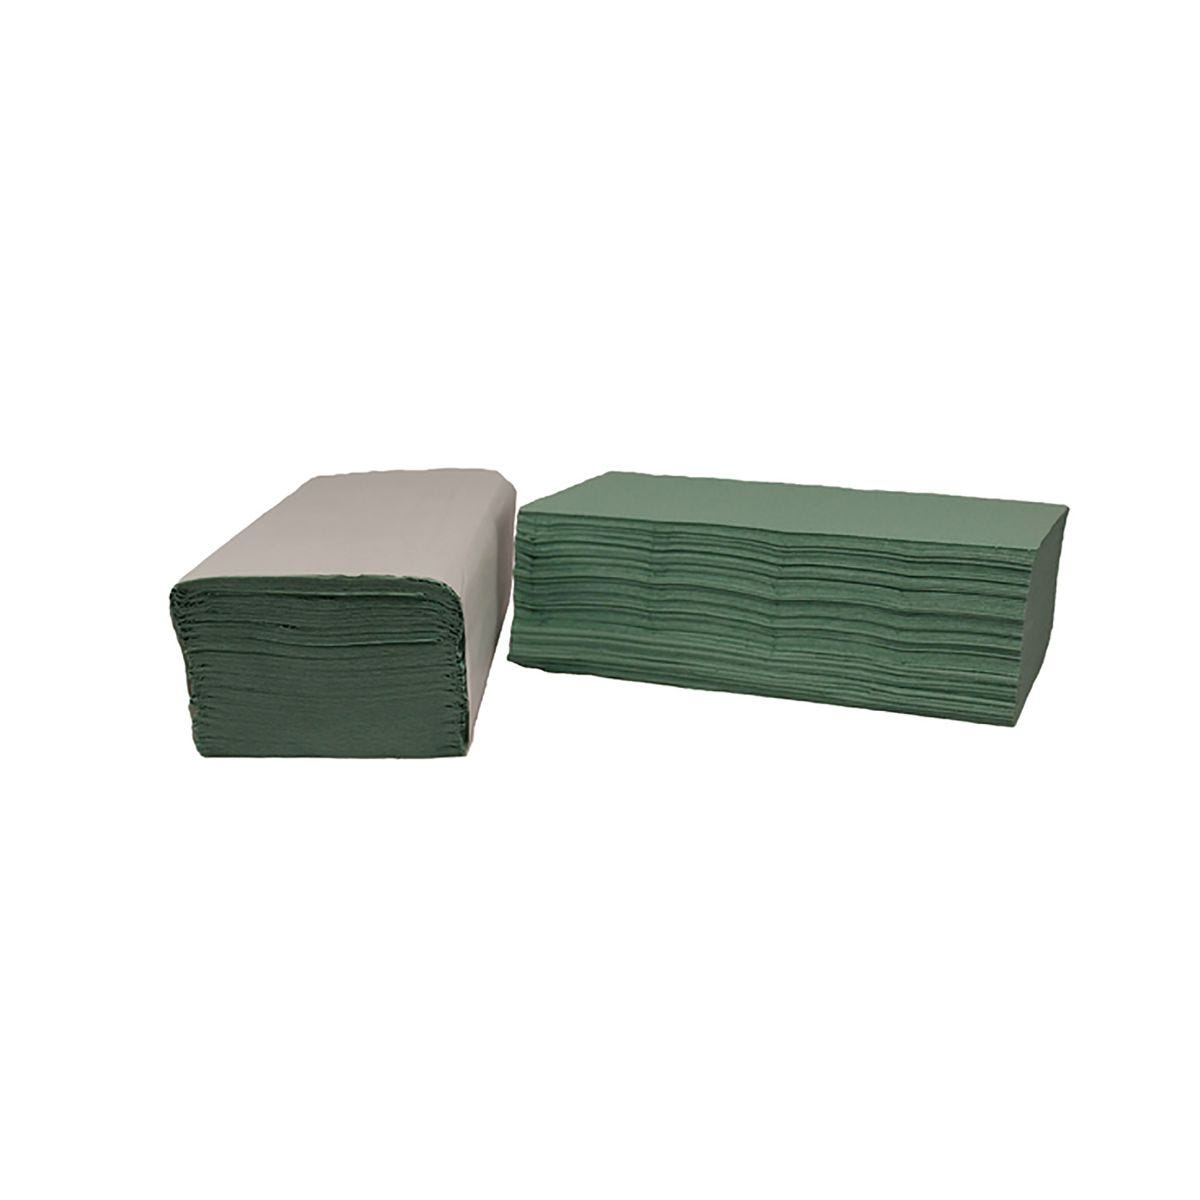 Image of 2Work I-Fold 1-Ply Hand Towels 190x250mm Pack of 3600 Green, Green